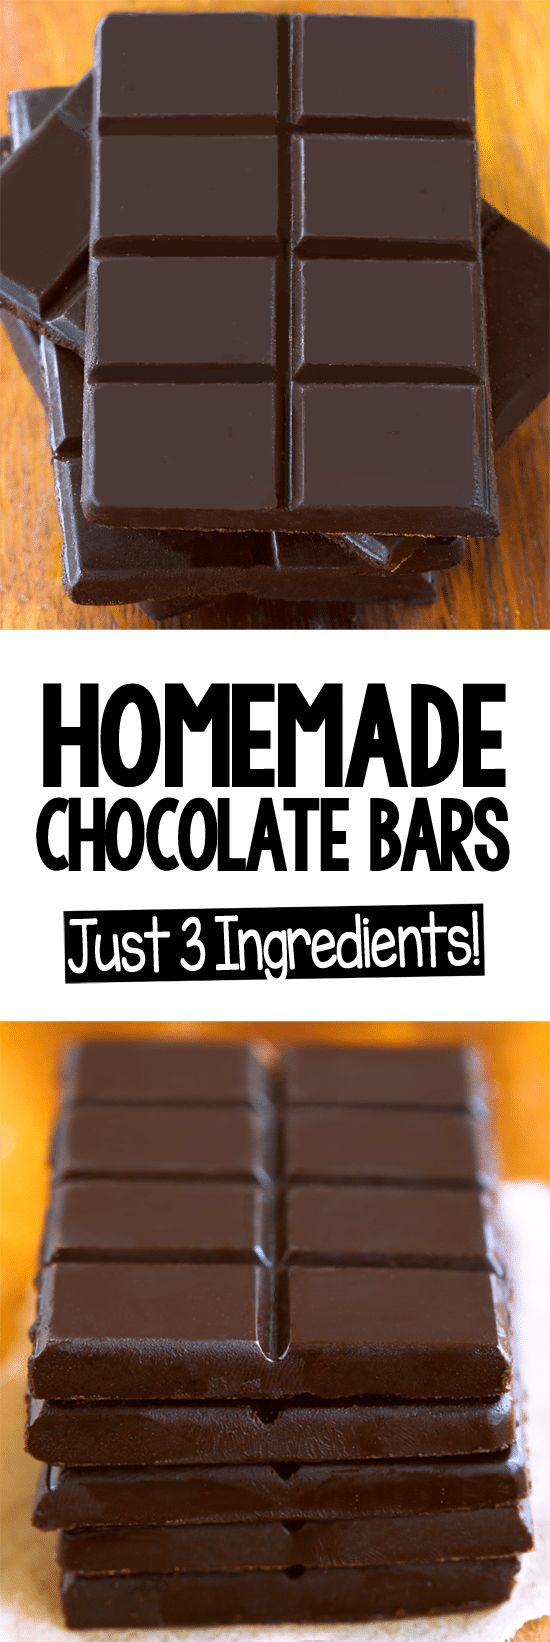 Cool Create CHOCOLATE BAR MAKER Make Personalised Candy CHOCOLATES Bar EASY CHEF